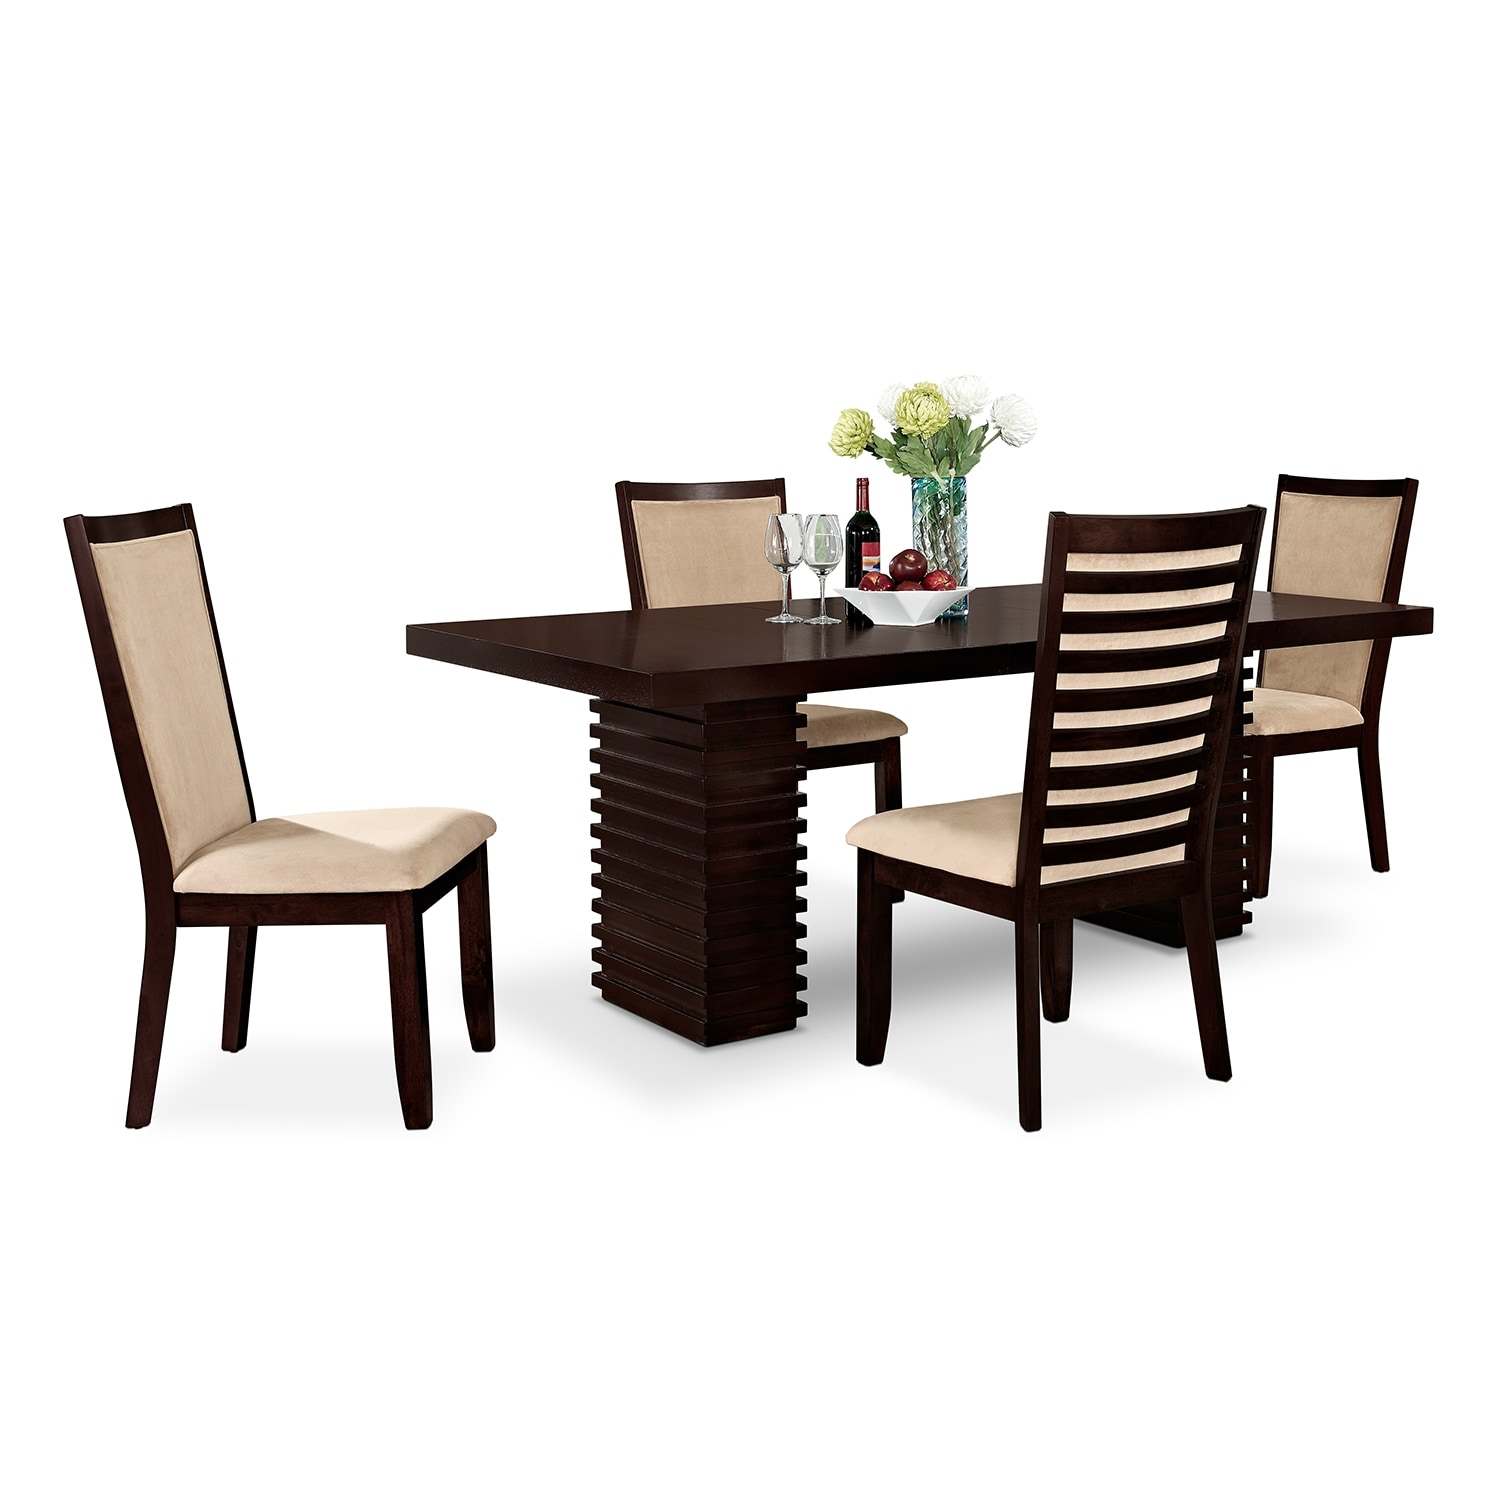 City Furniture Dining Room Paragon Table And 4 Chairs Merlot And Camel Value City Furniture